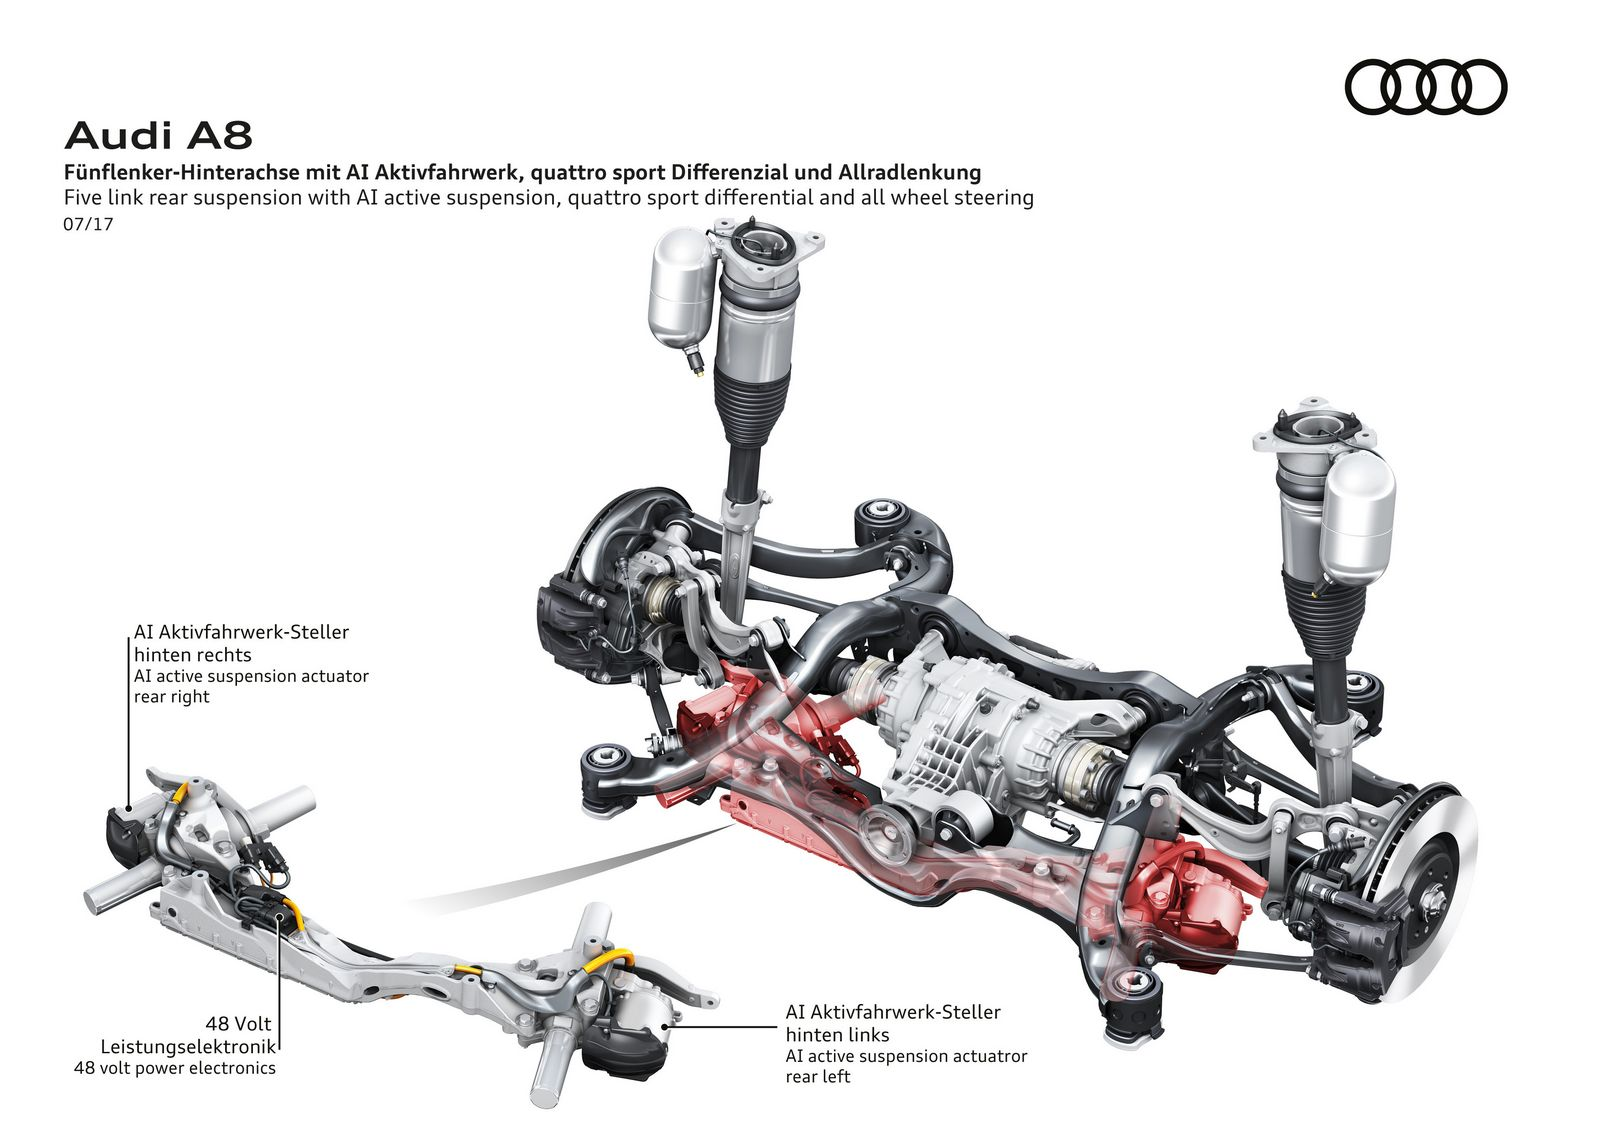 Five link rear suspension with AI active suspension, quattro sport differential and all wheel steering